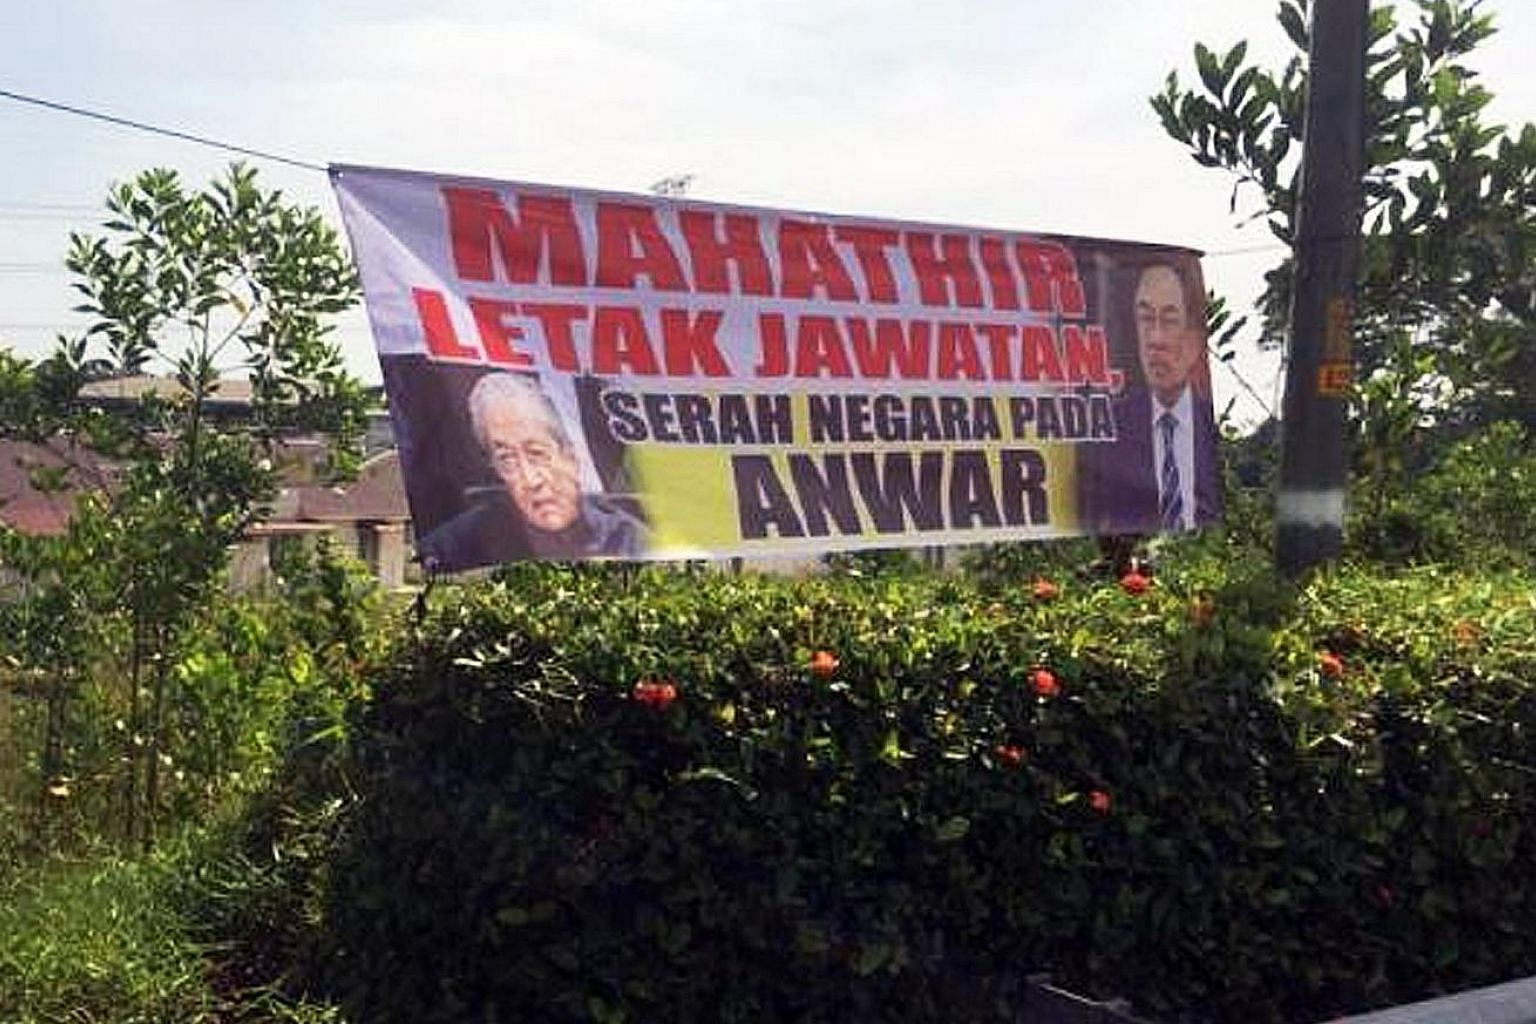 """One of the banners in Port Dickson with a message in Malay reading """"Mahathir step down, leave the country to Anwar"""". The banners were put up ahead of of a PKR retreat attended by Prime Minister Mahathir Mohamad."""